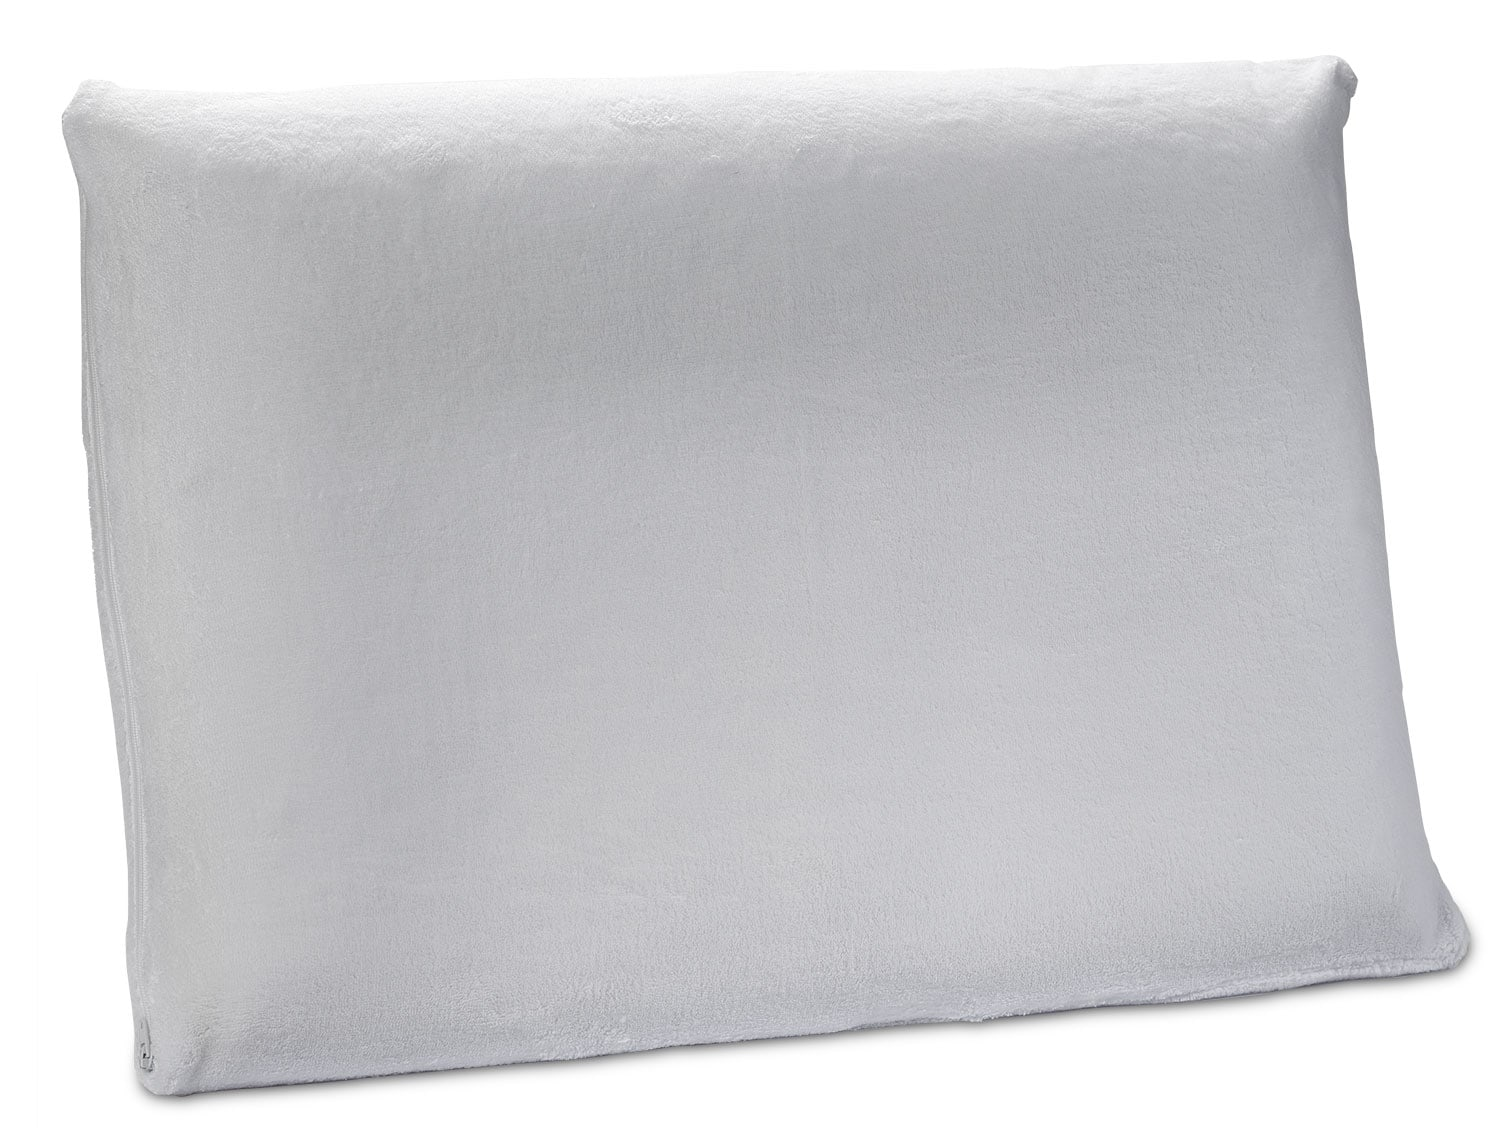 Mattresses and Bedding - Ergo Utopia Standard Pillow